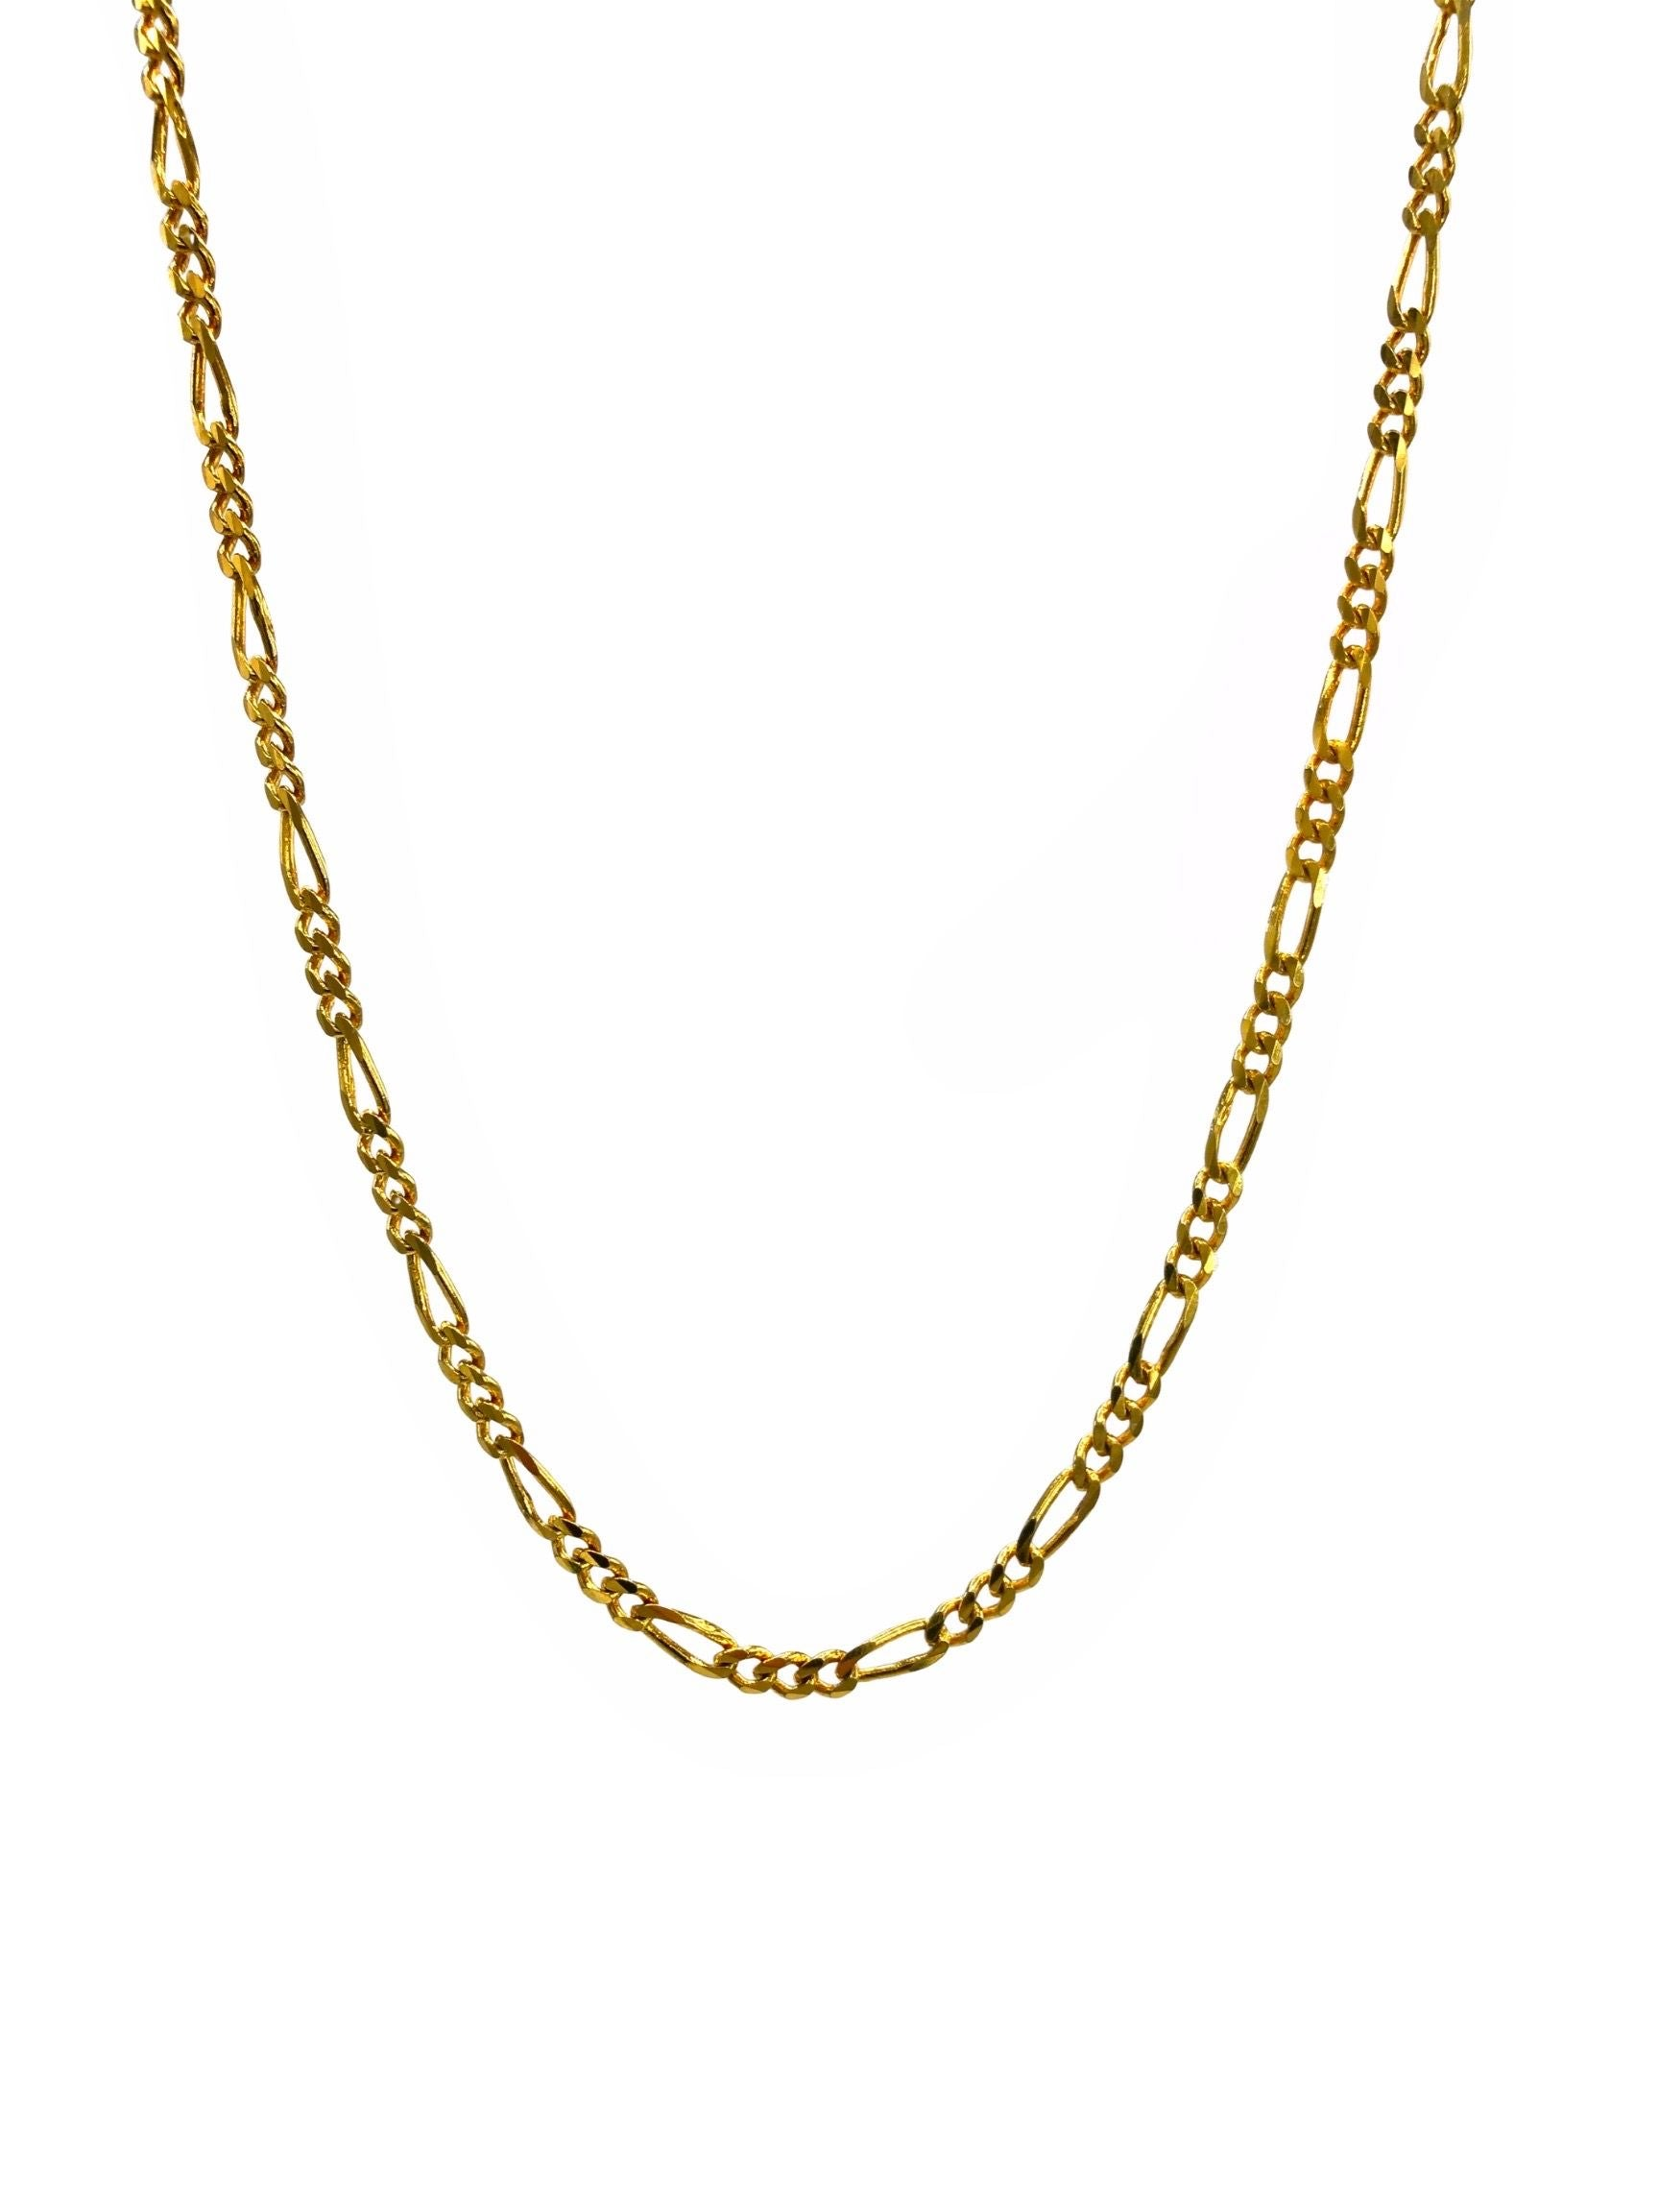 Gold Finley-Figaro Chain Link Necklace-Necklaces-Jared Jamin Online-JARED JAMIN